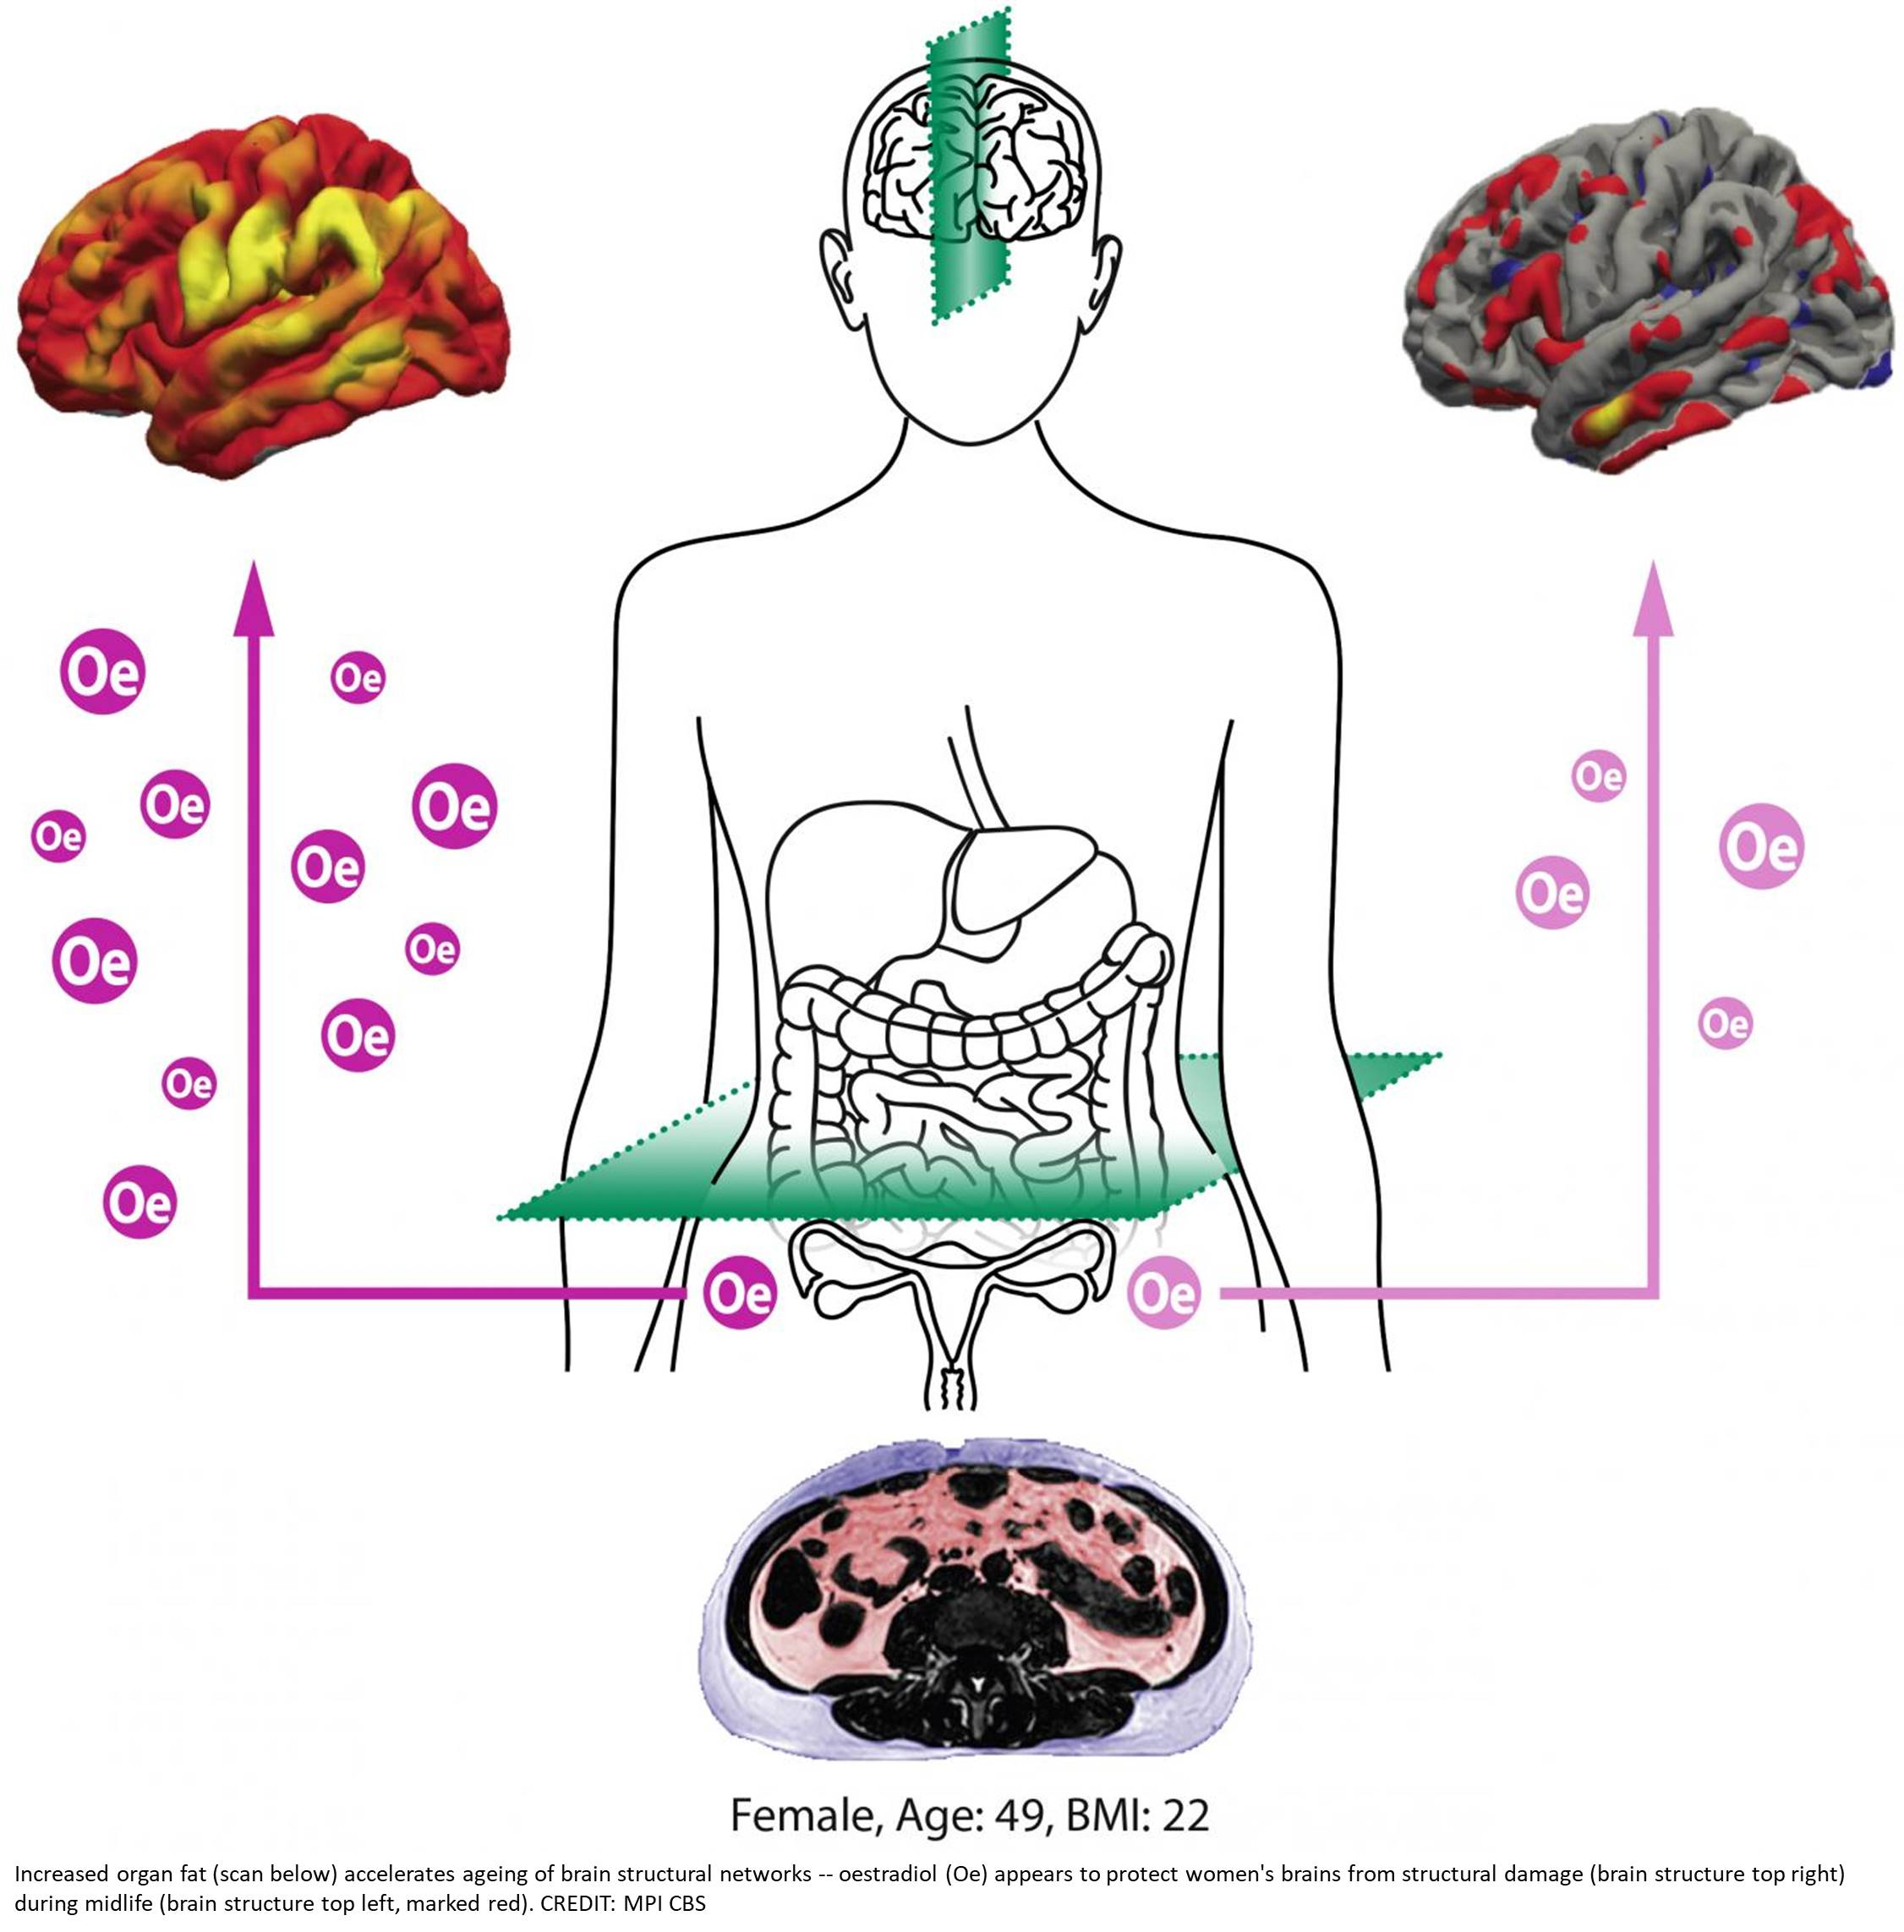 Sexual hormone oestradiol protects female brain in mid-life